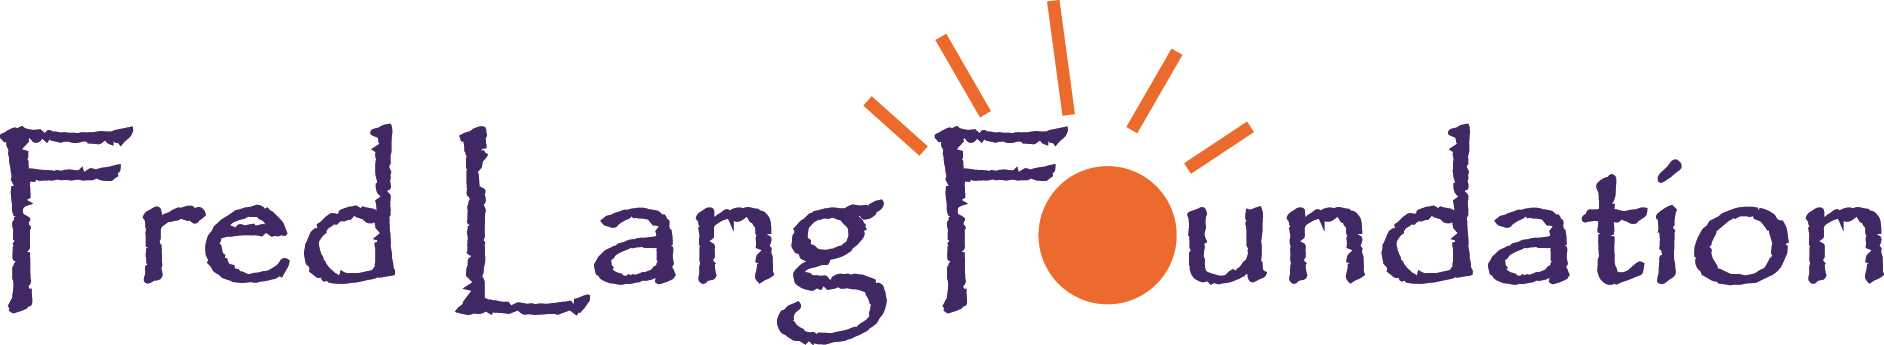 Fred Lang Foundation logo